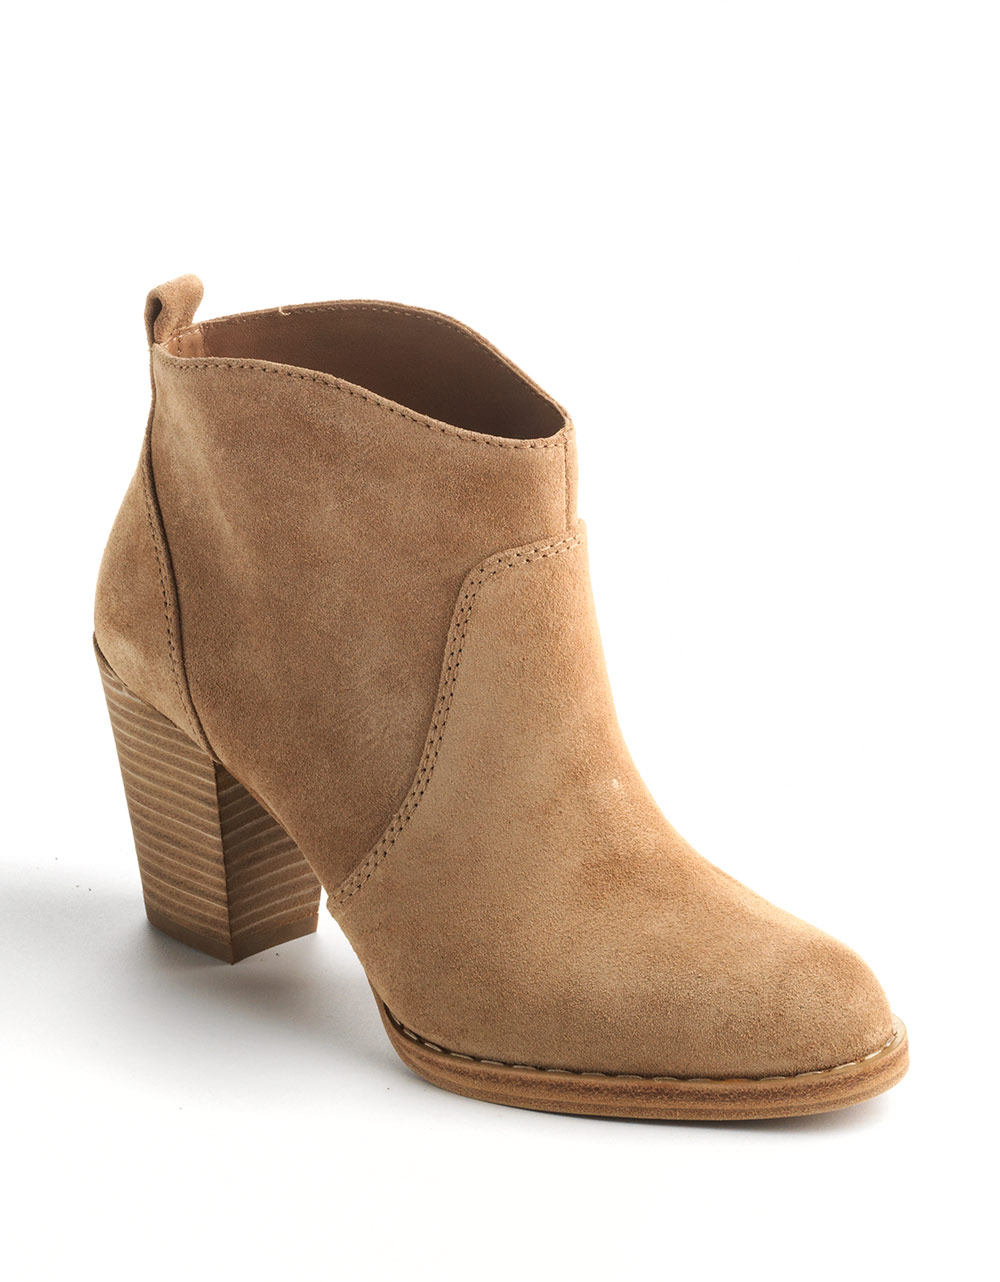 kors by michael kors wayland suede ankle boots in brown